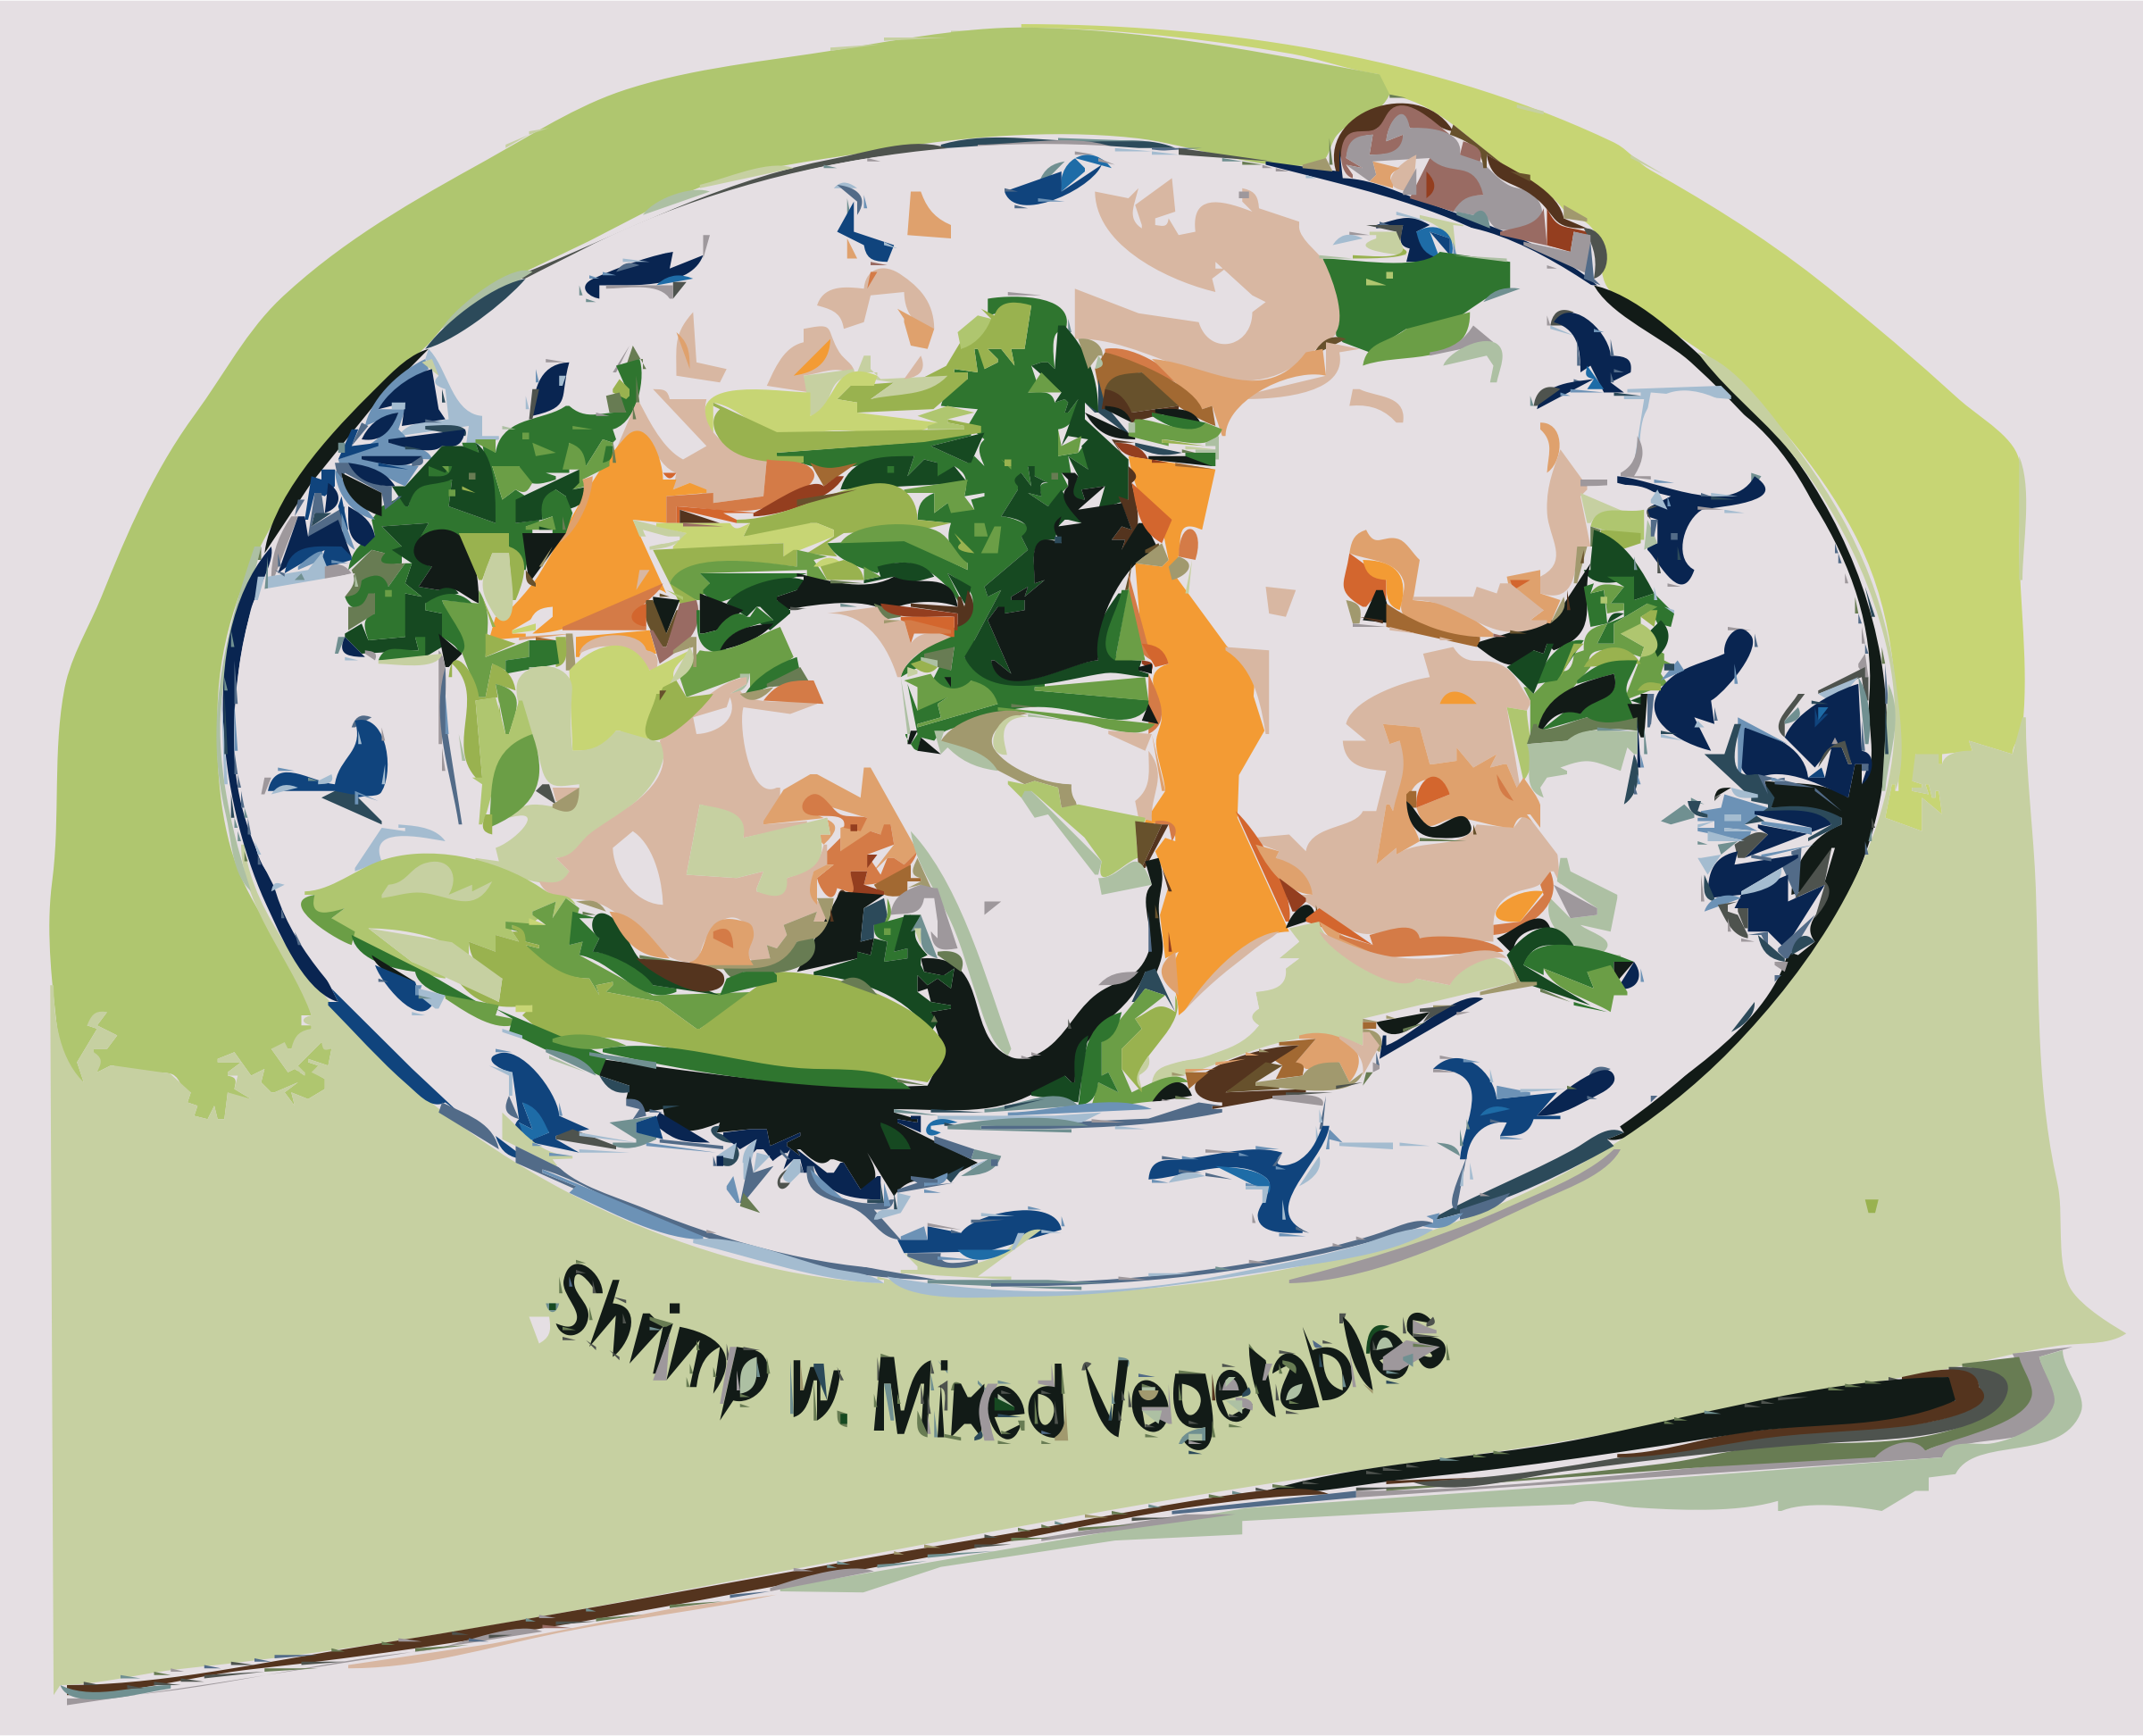 Shrimp with Mixed Vegetables by rejon